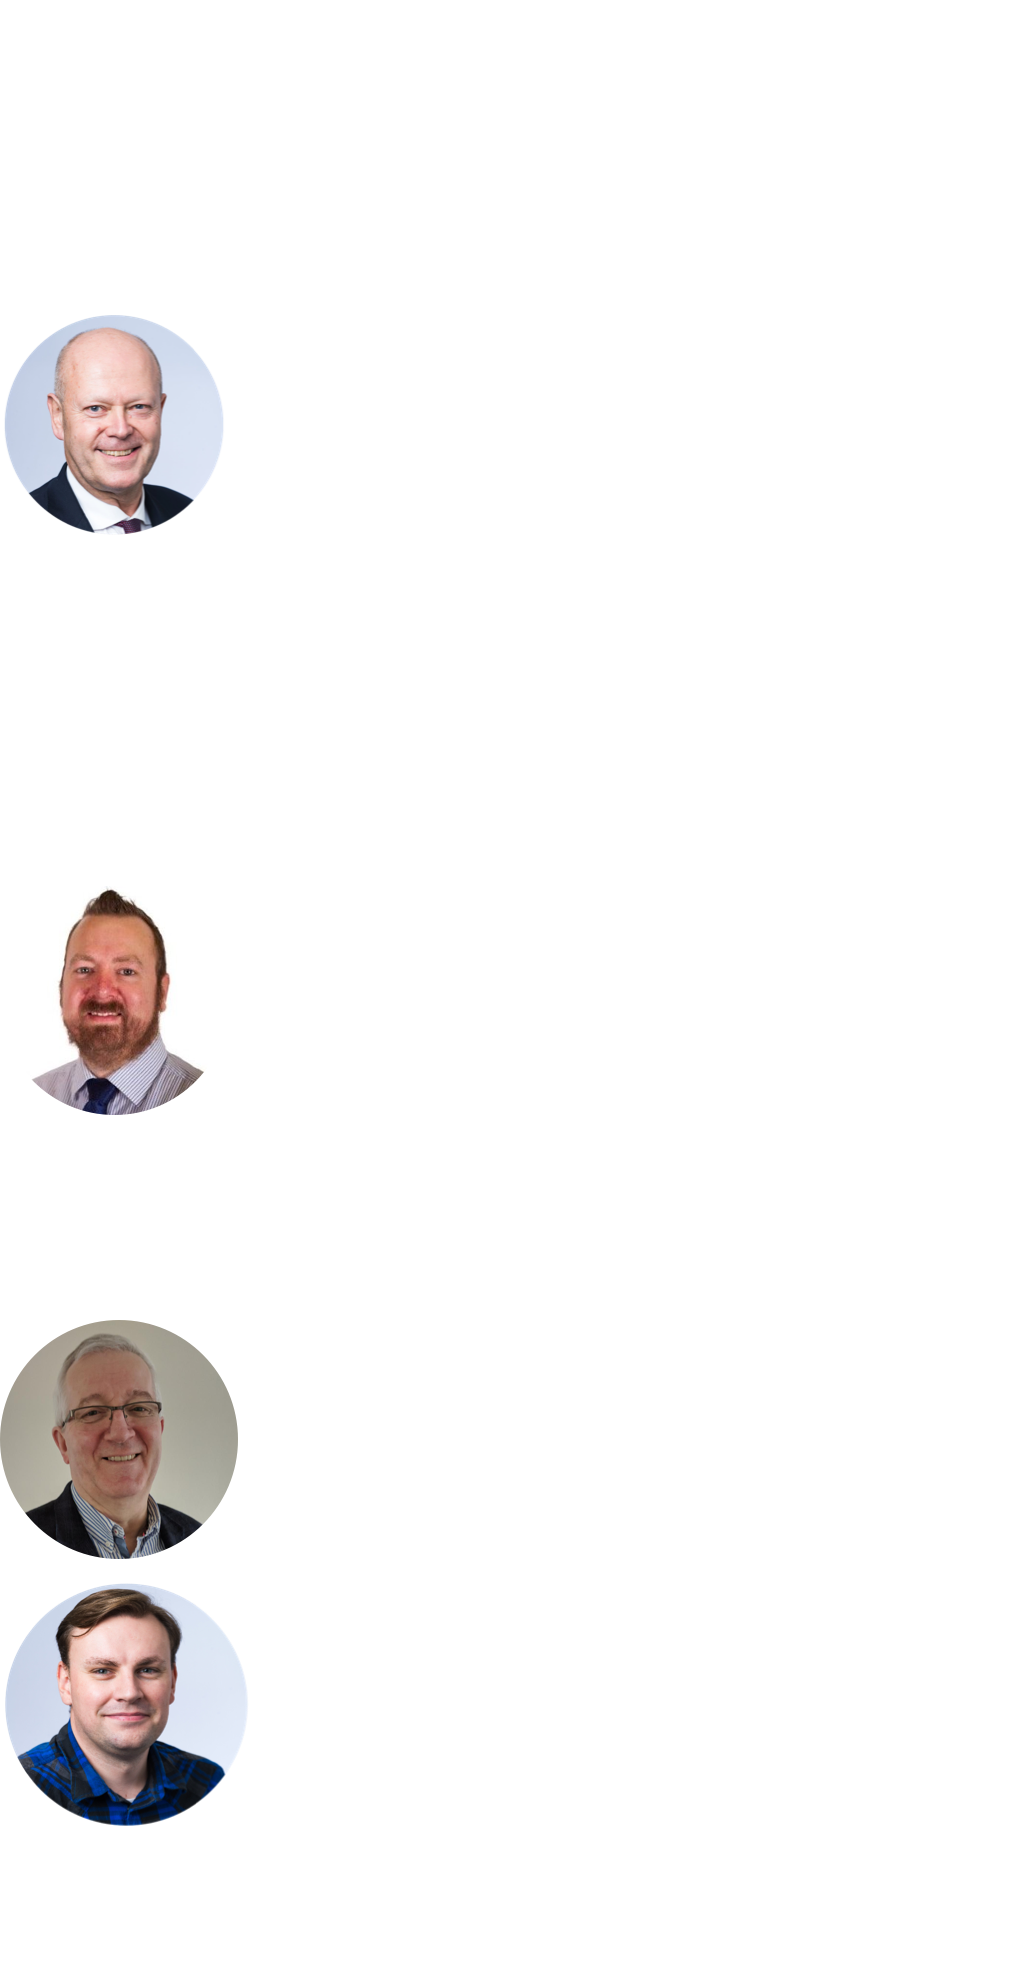 EiB Analytics 2018 Conference - Wednesday 25th April - Morning Agenda